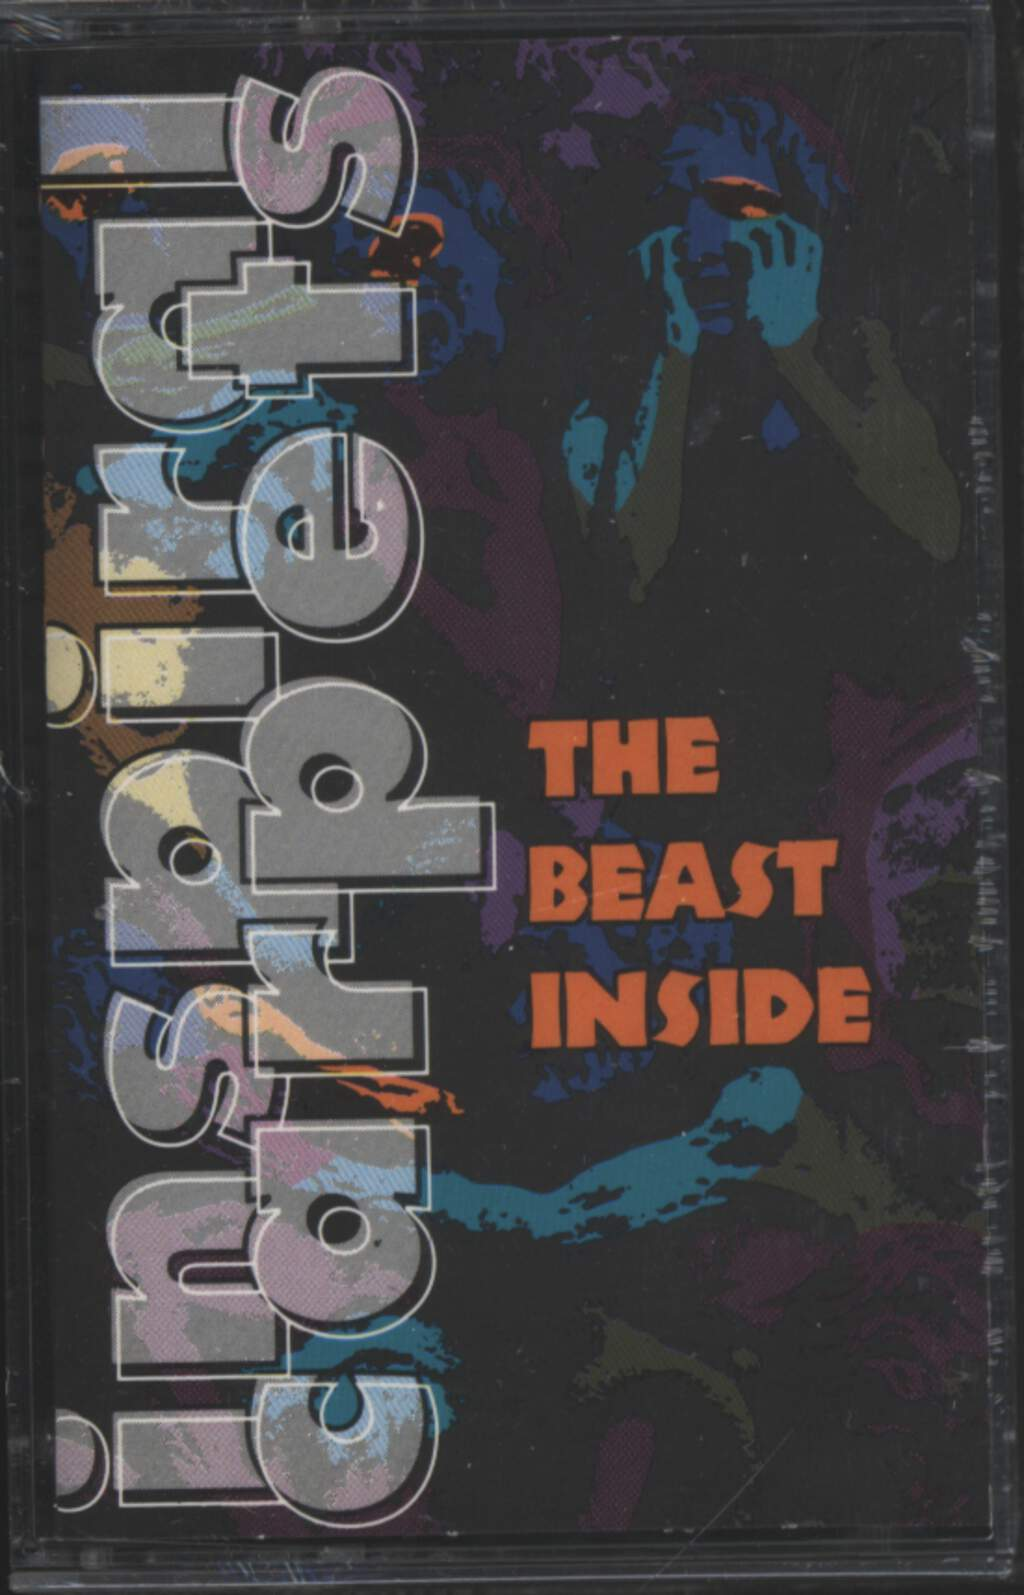 Inspiral Carpets: The Beast Inside, Tape